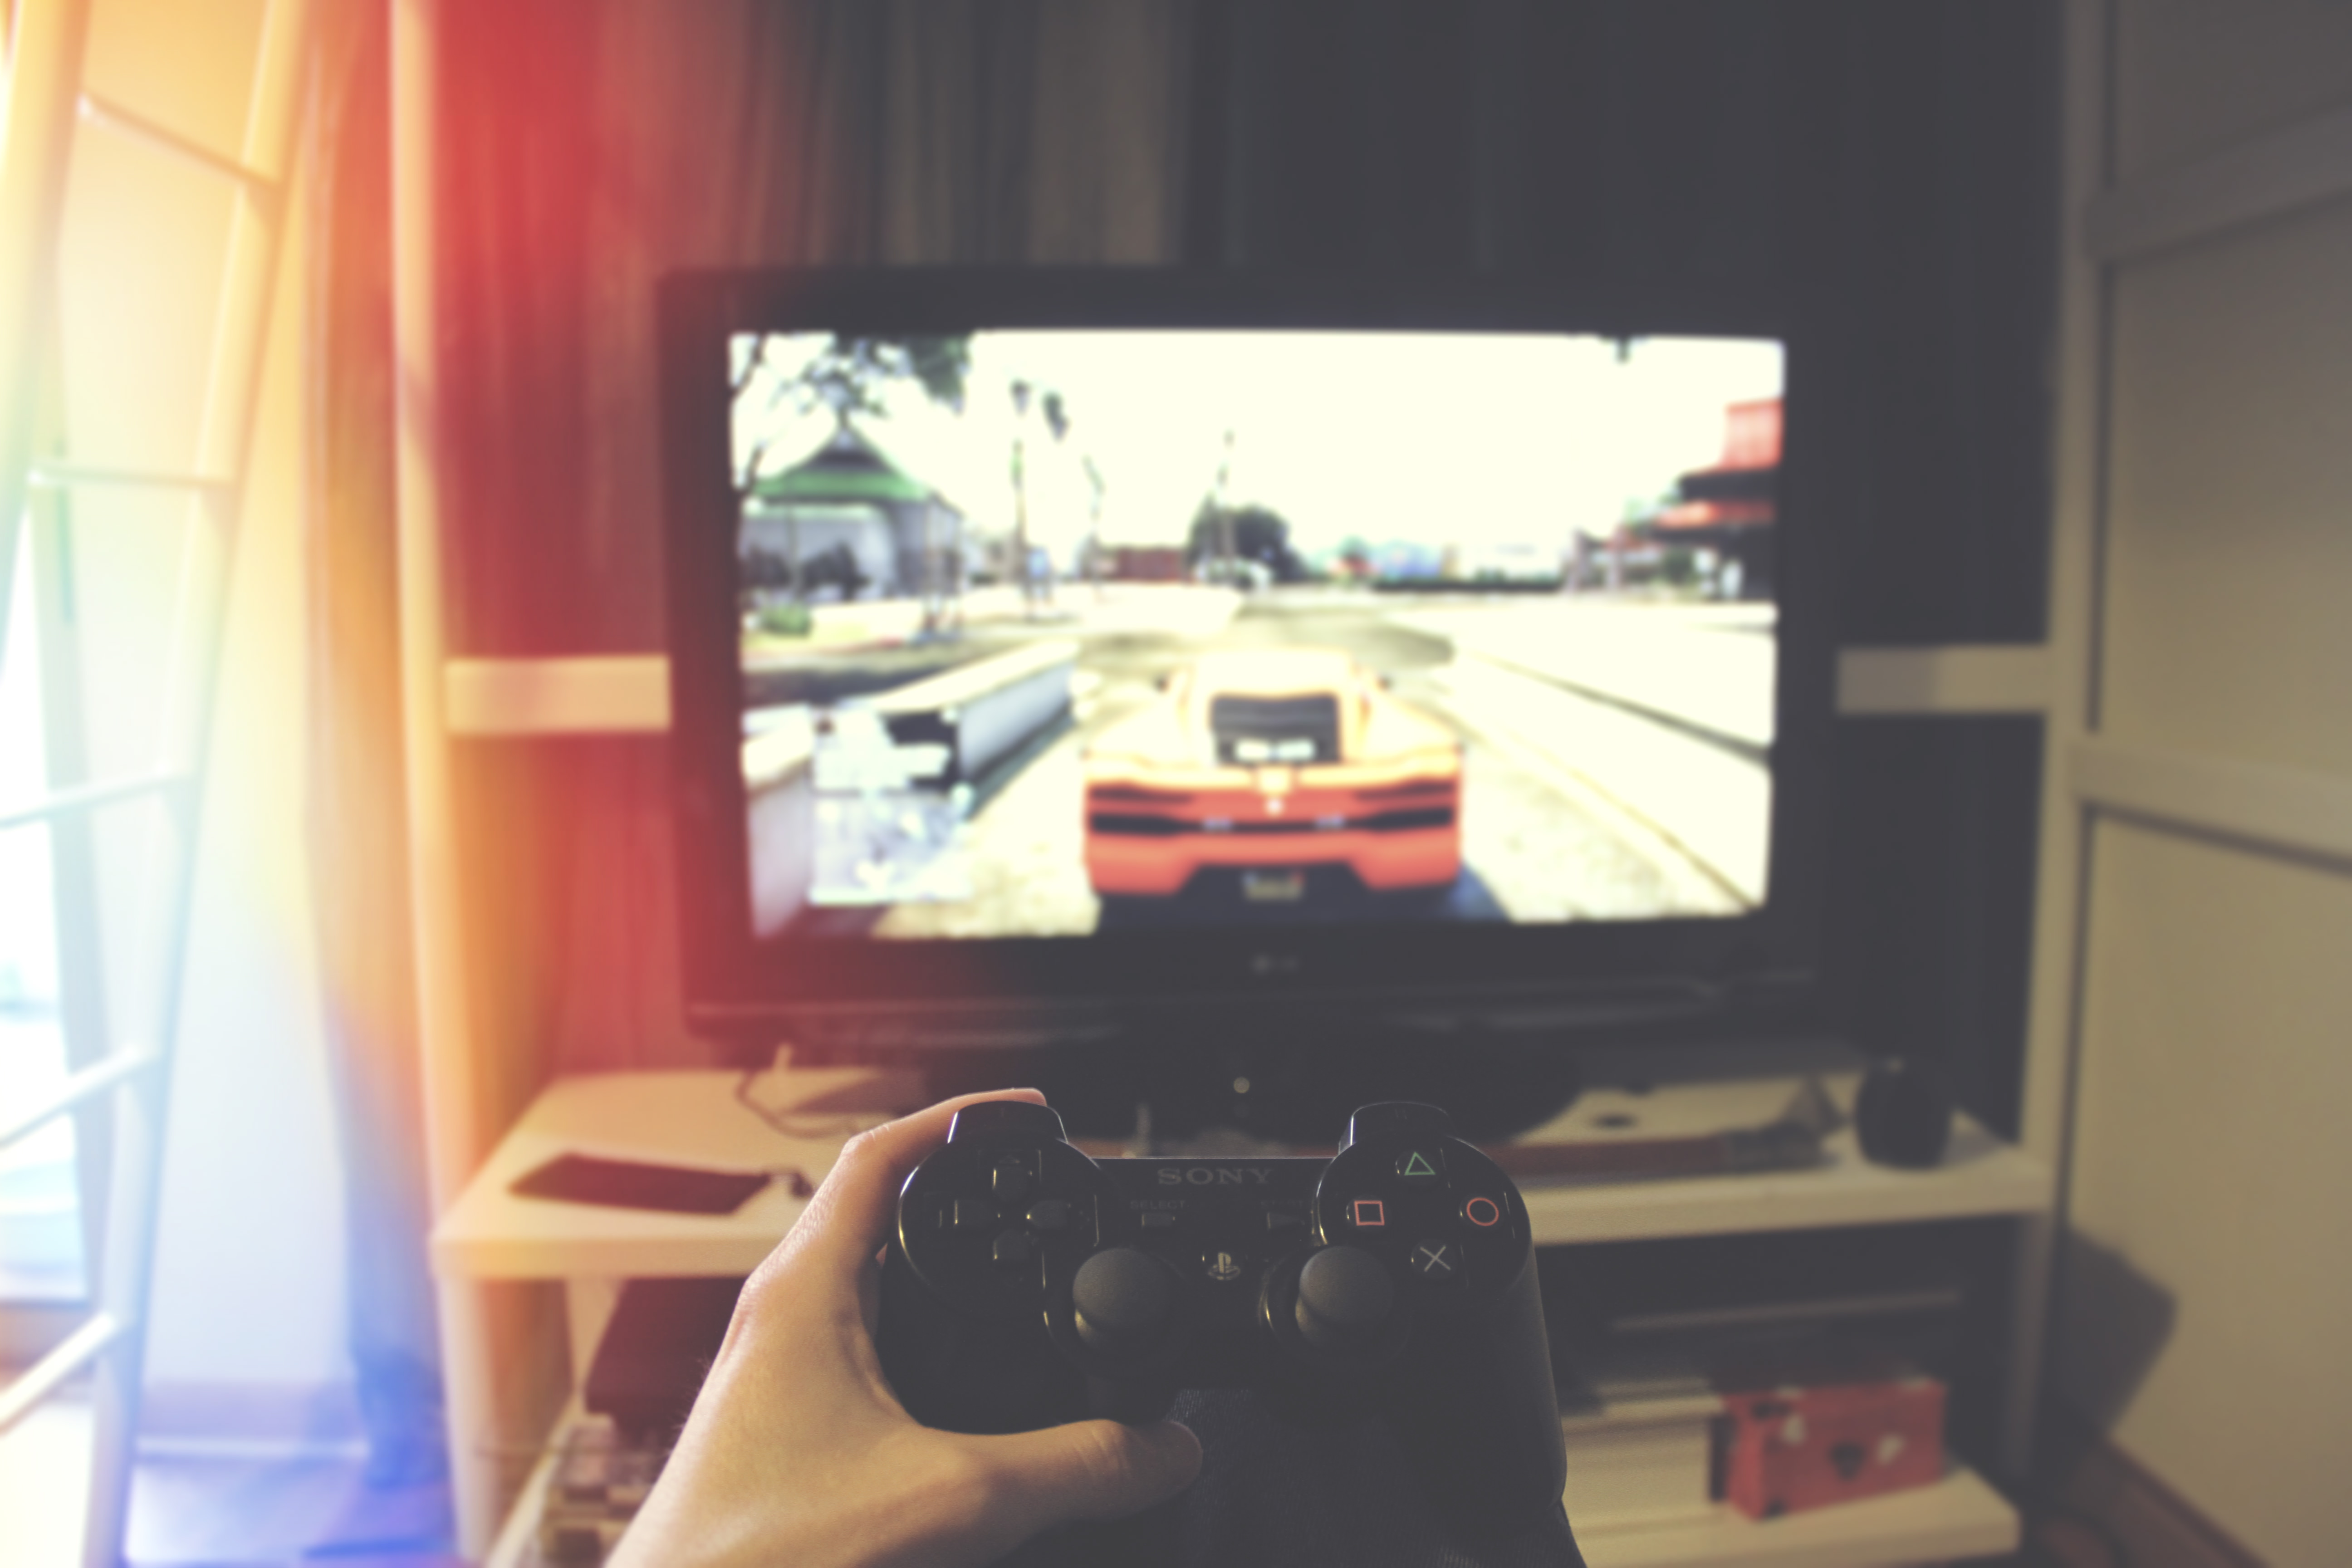 If you believe you are only good at video games, then you will avoid anything that doesn't involve video games.